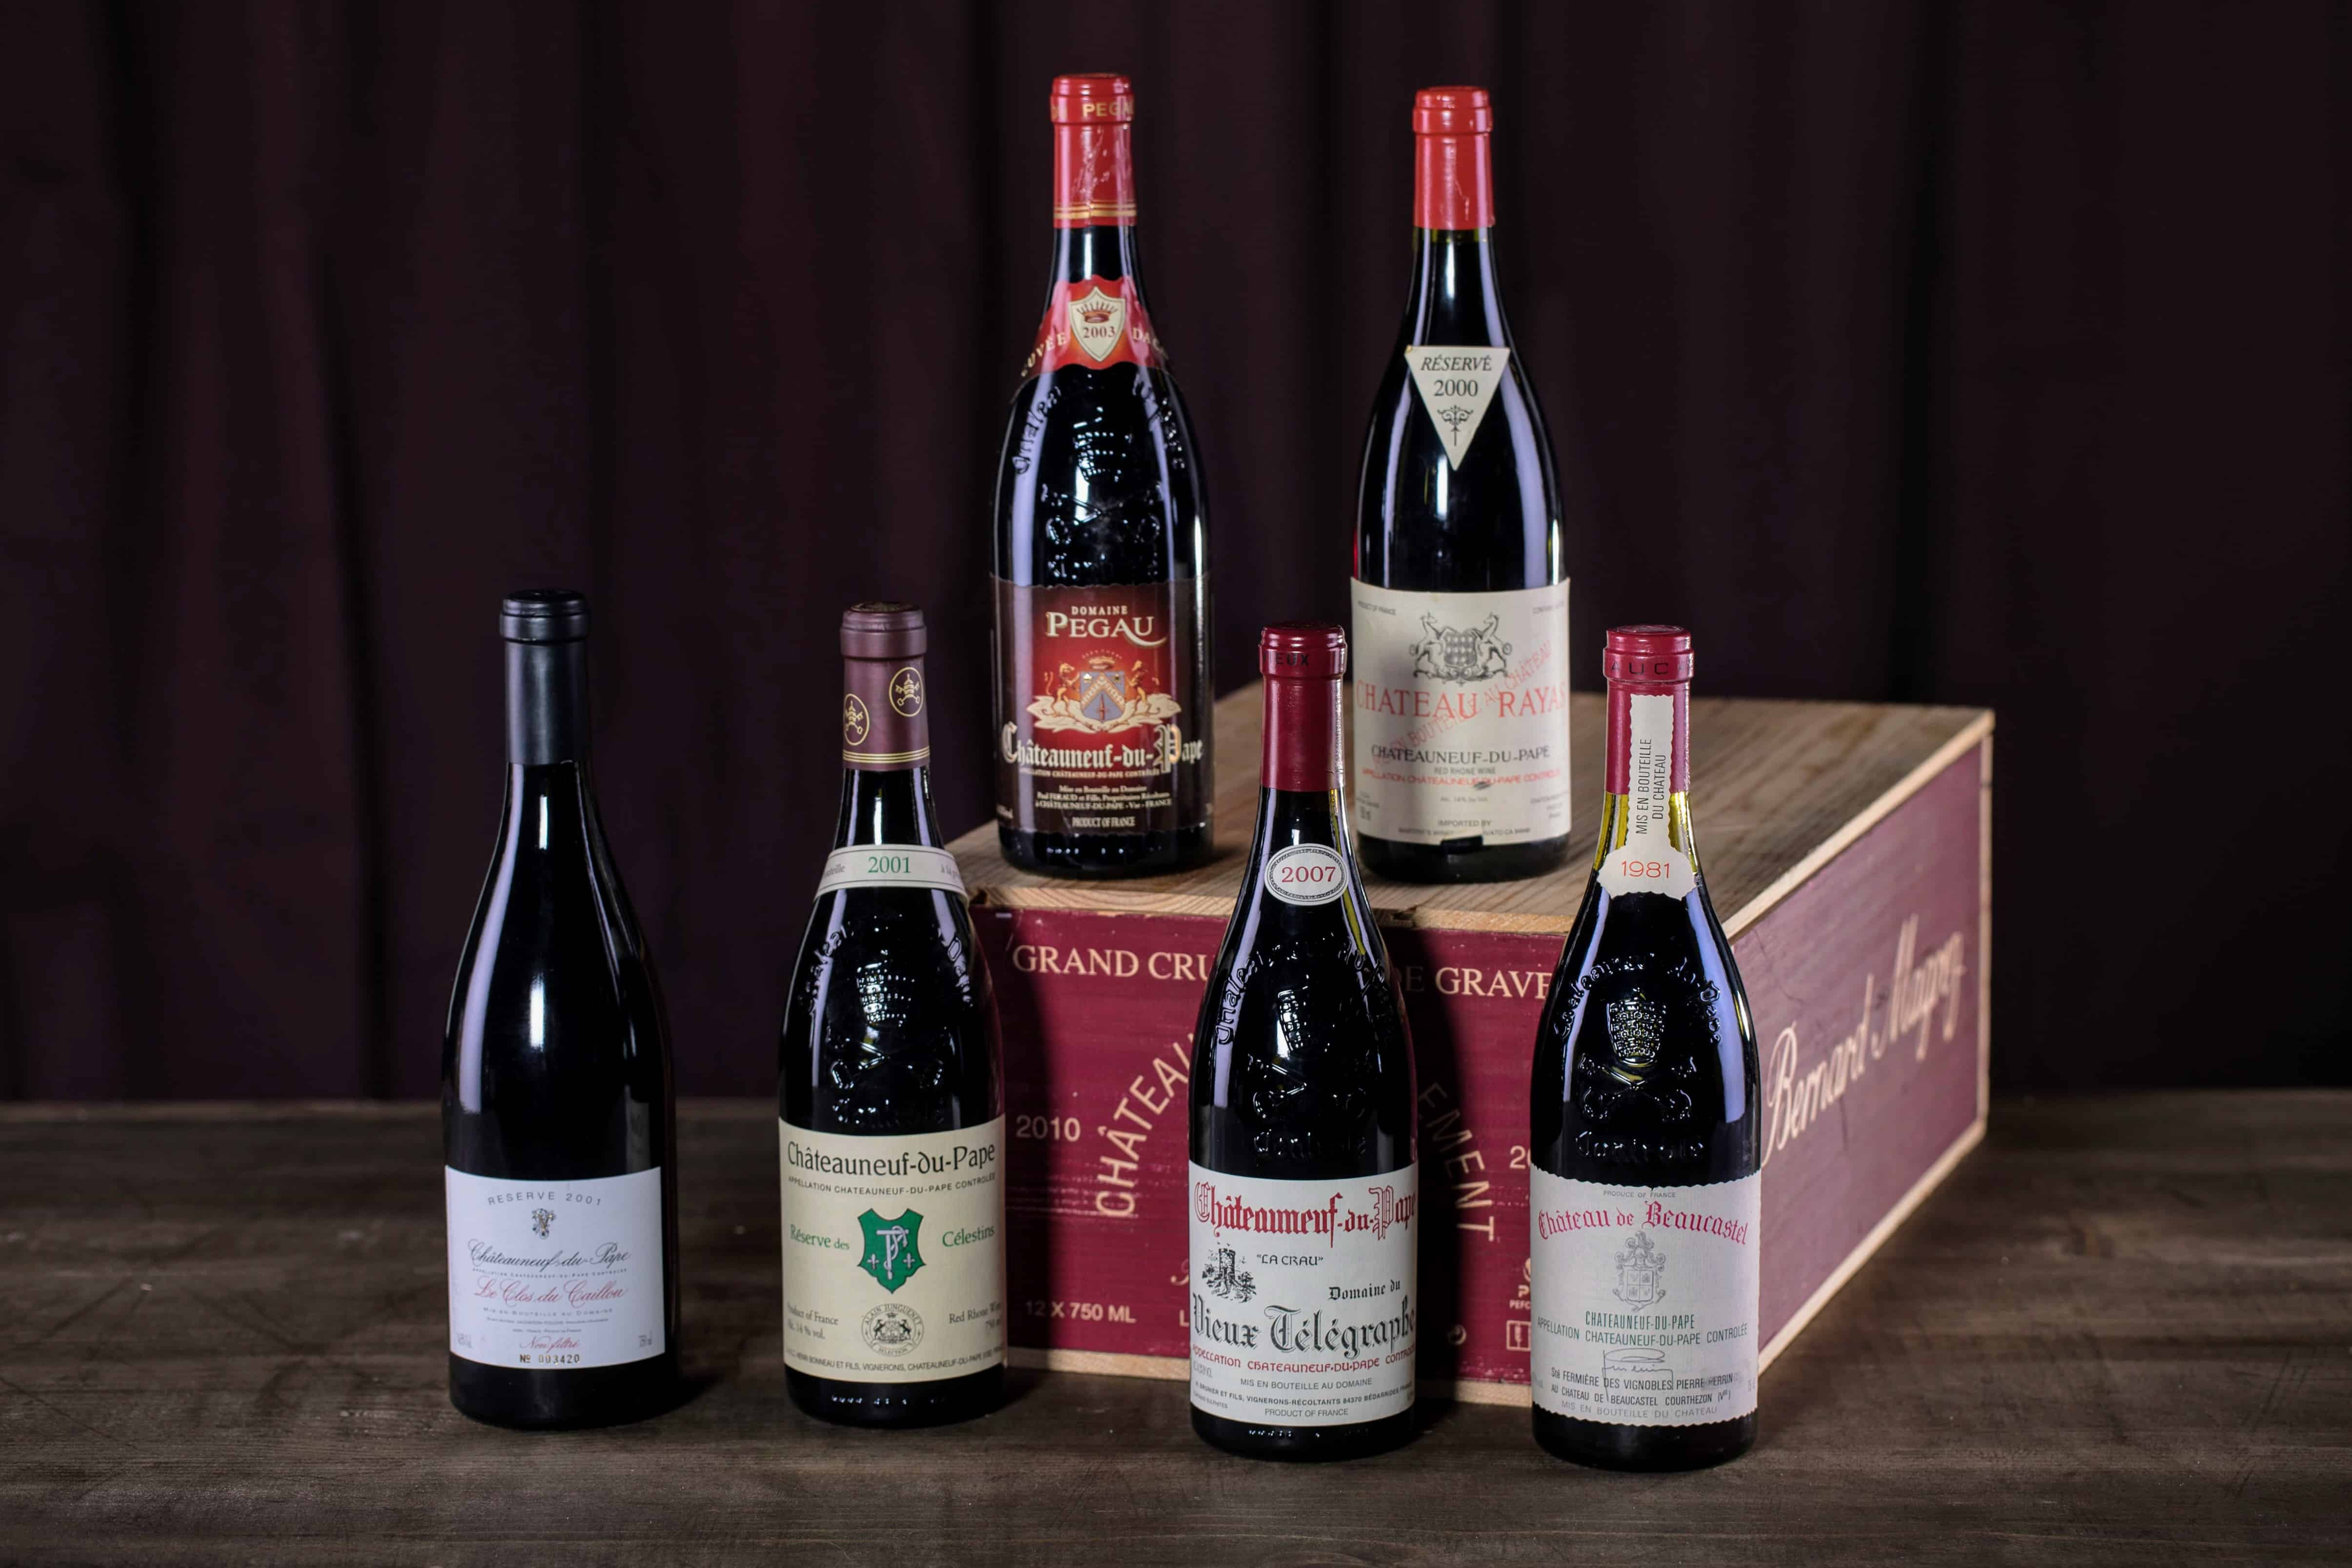 Some of the best Southern Rhone producers are Rayas, Pegau, and Beaucastel.